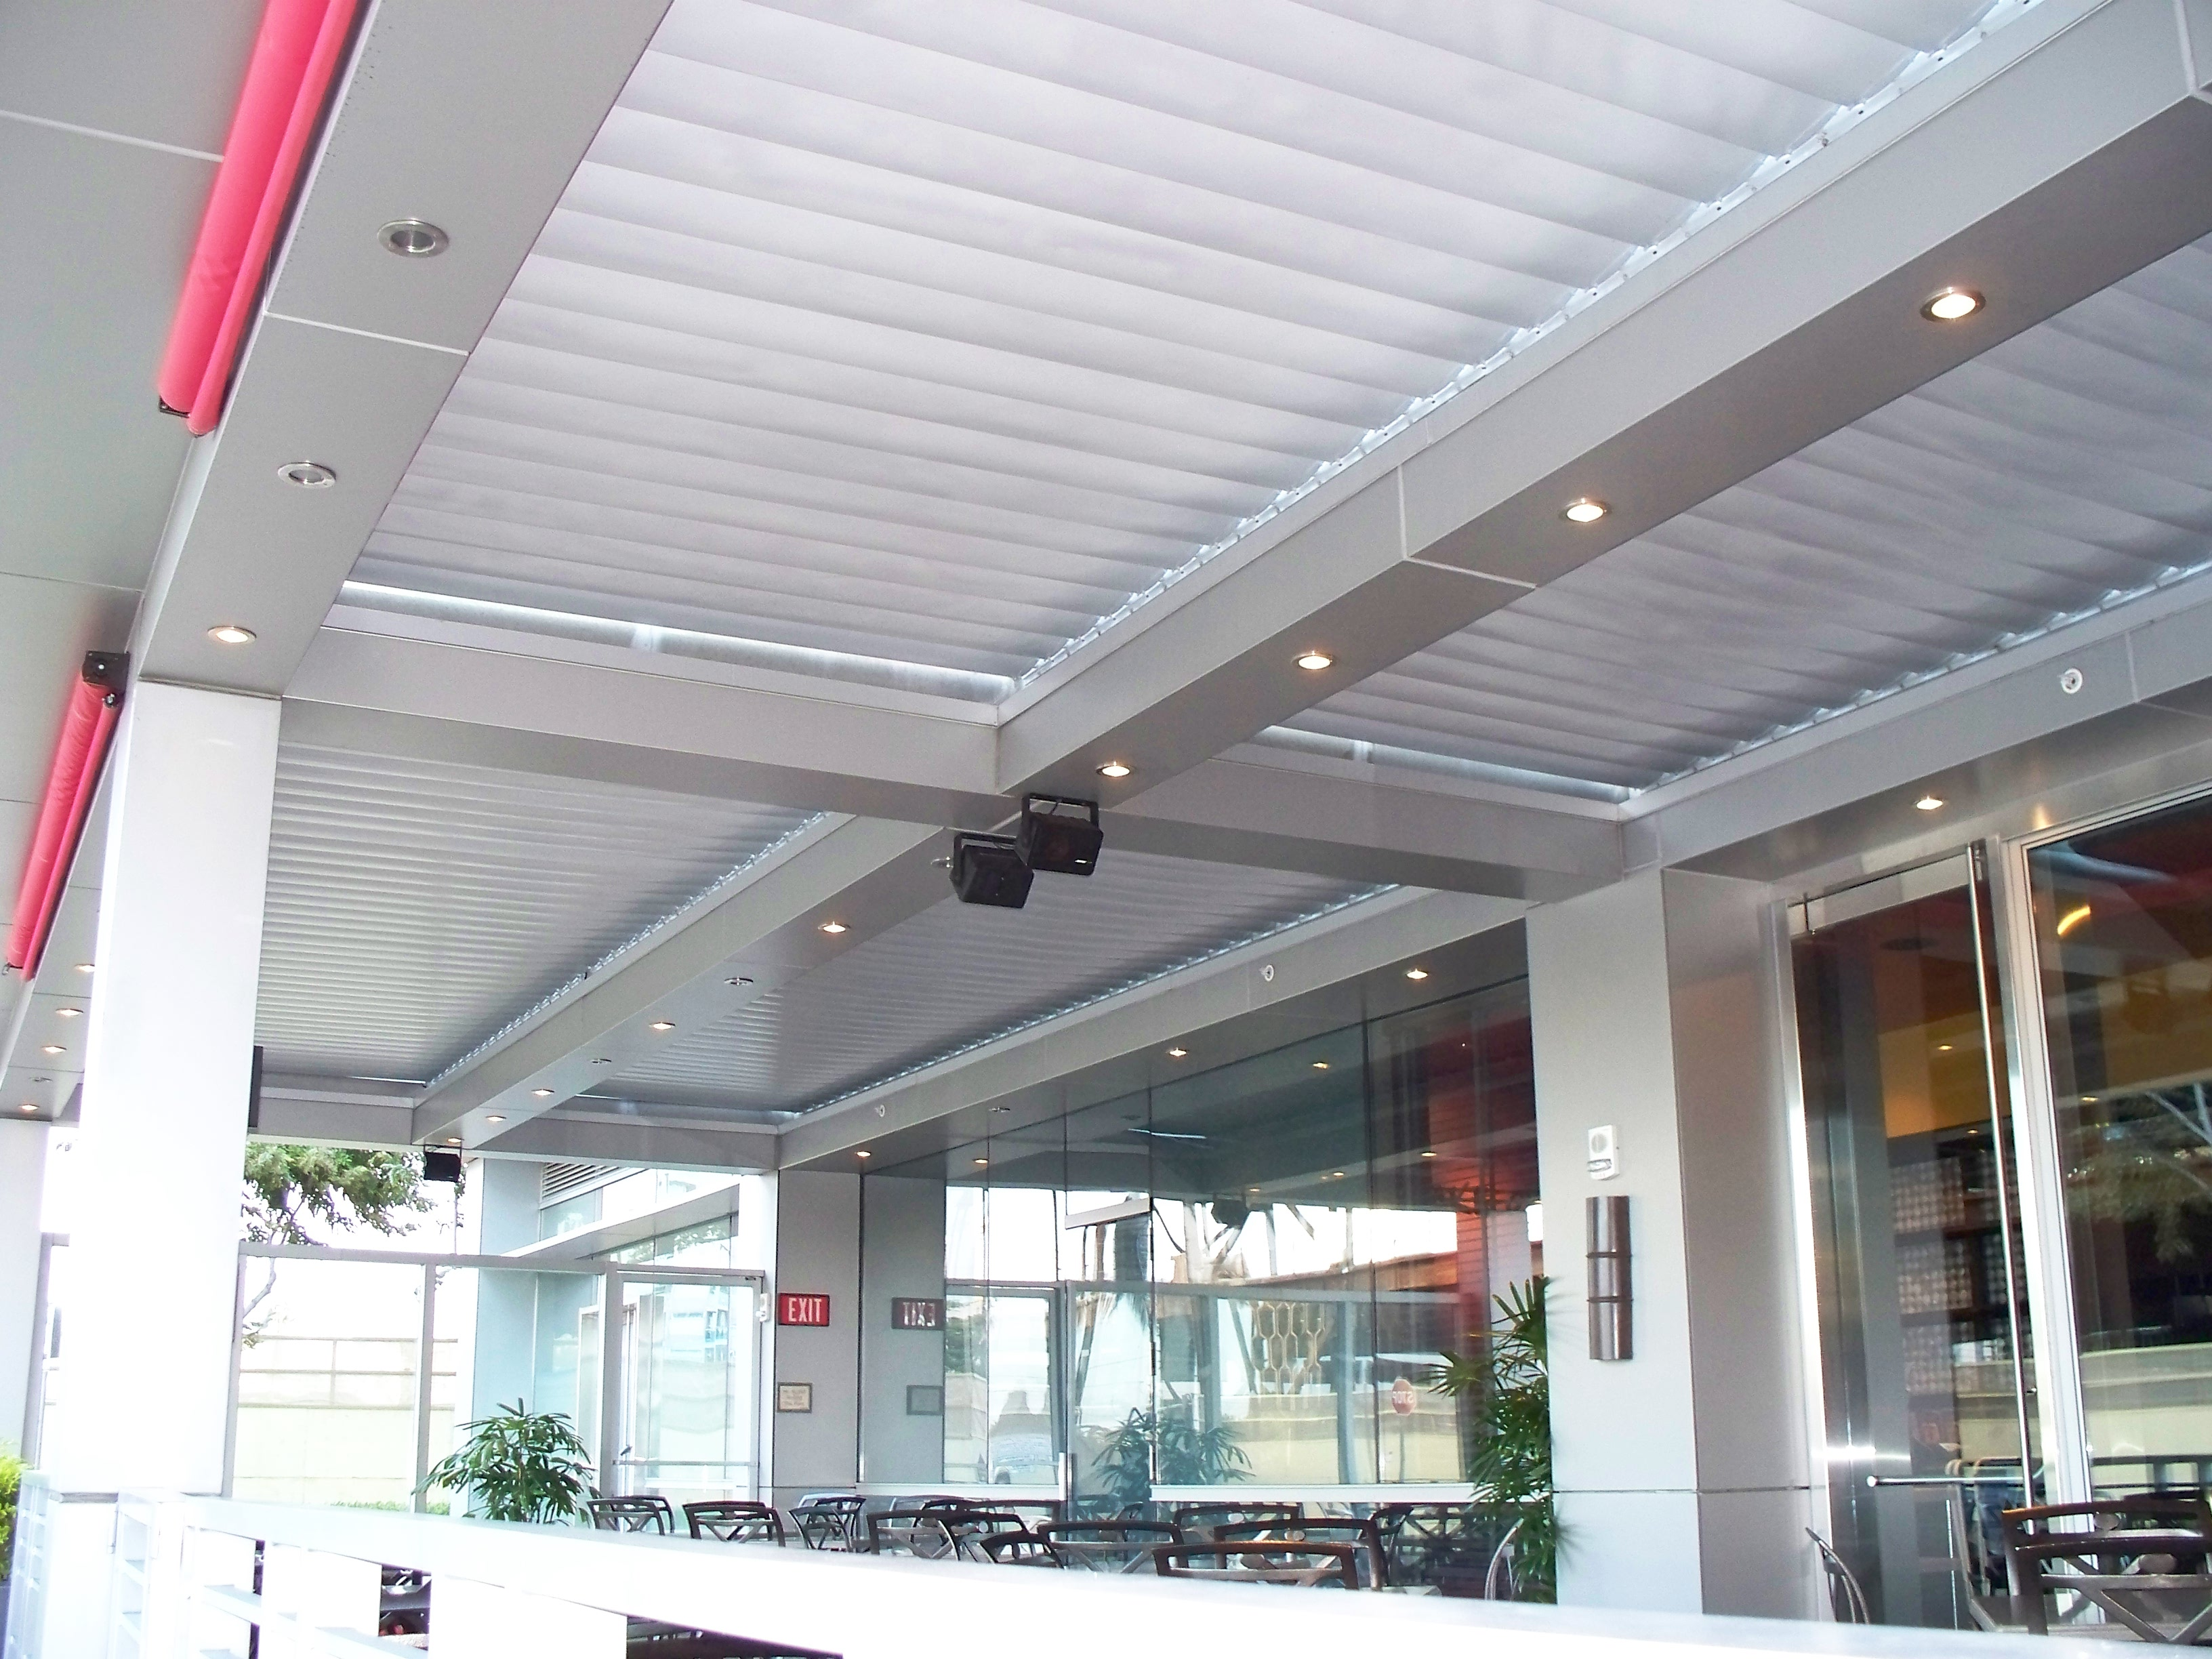 PF Changs [closed roof]